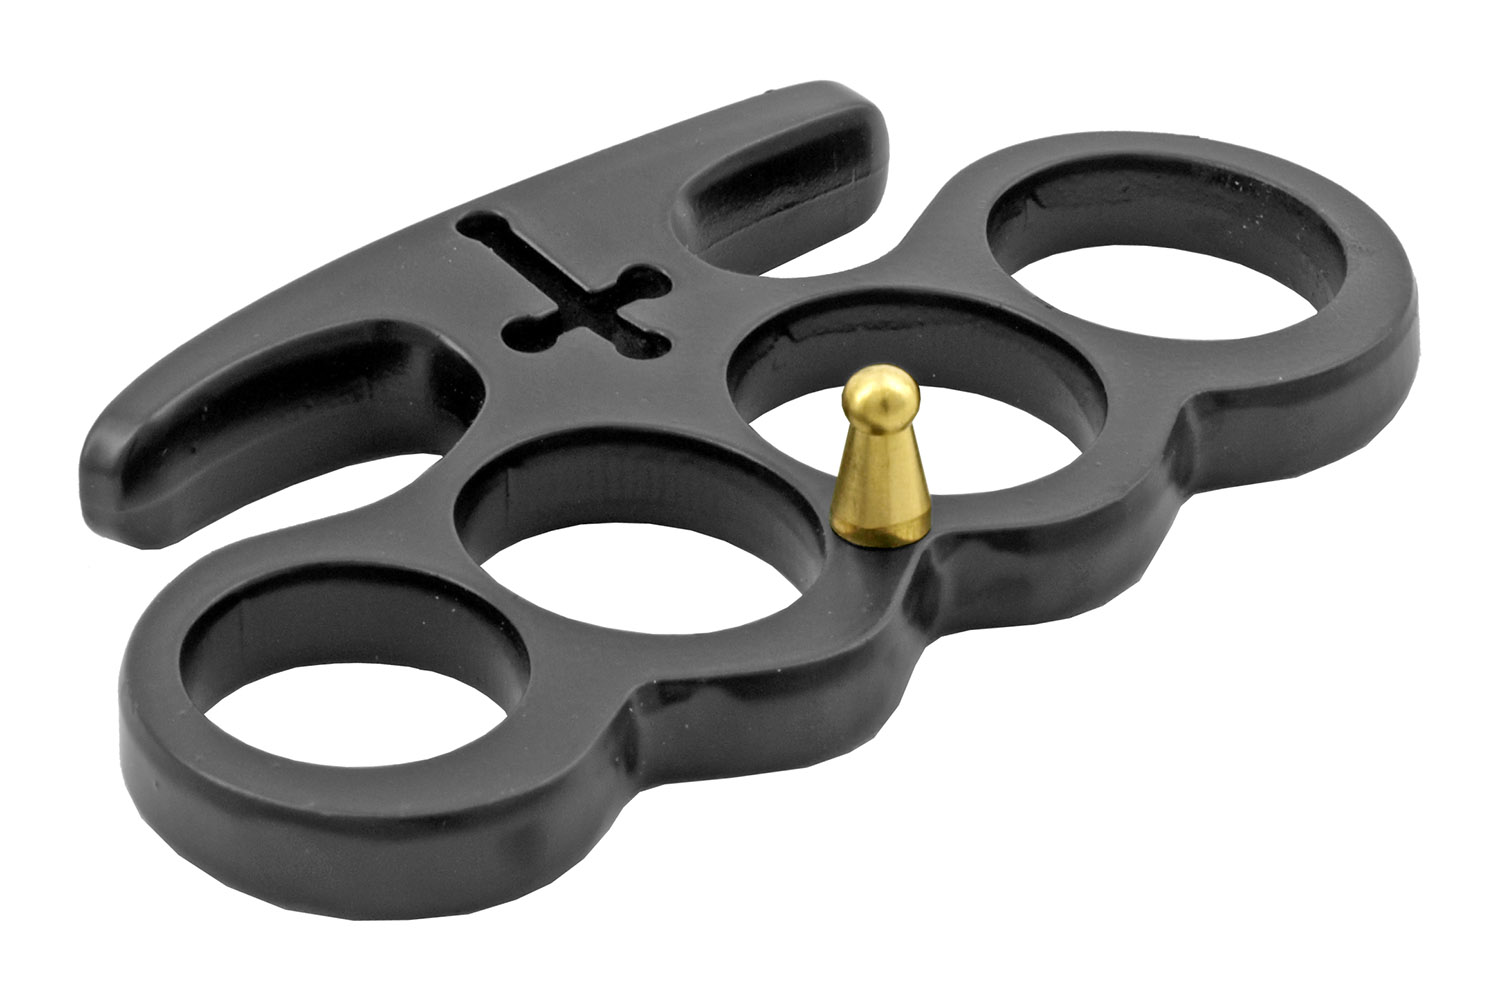 Christian Warrior Brass Knuckle Duster Style Belt Buckle with Cross - Black